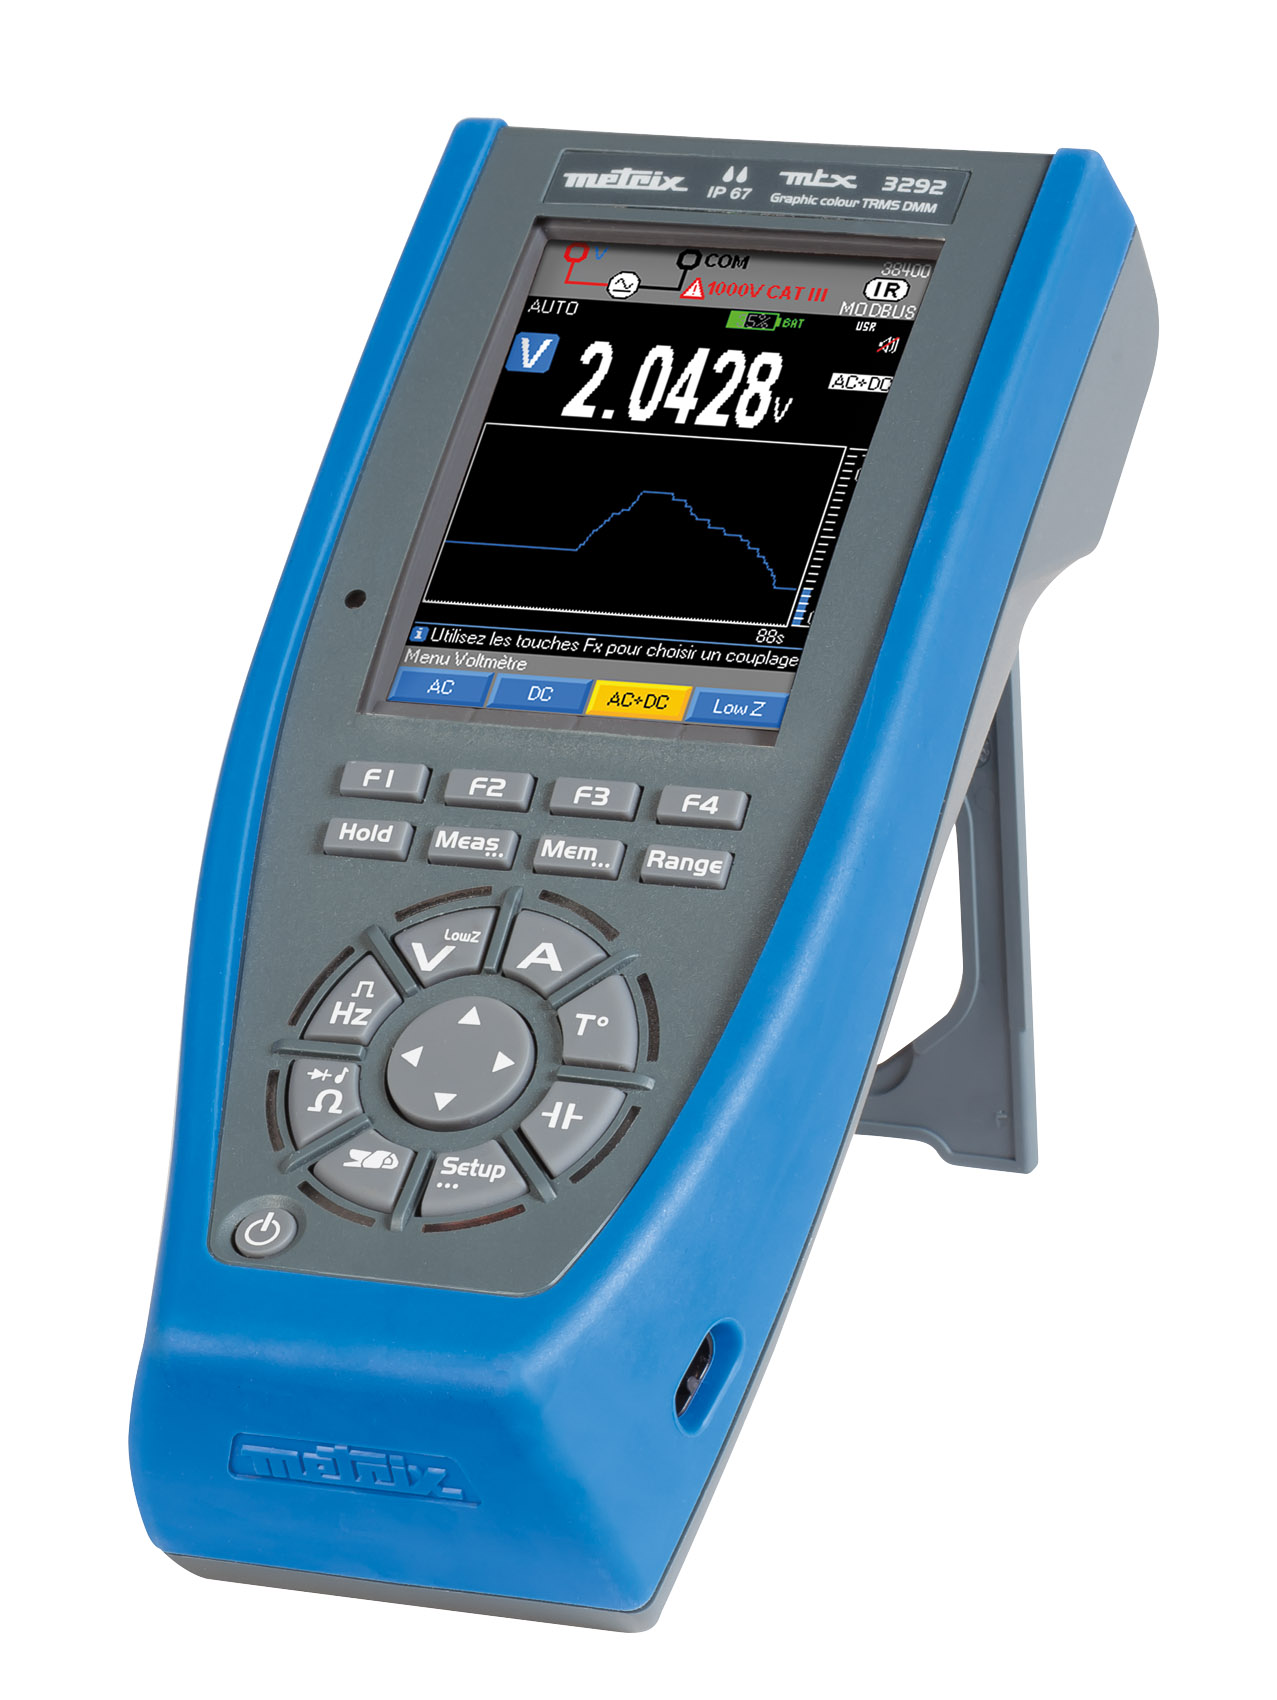 Simultaneously portable and benchtop multimeters, the ASYC IV models from Metrix® are simple to use and intuitive. Their